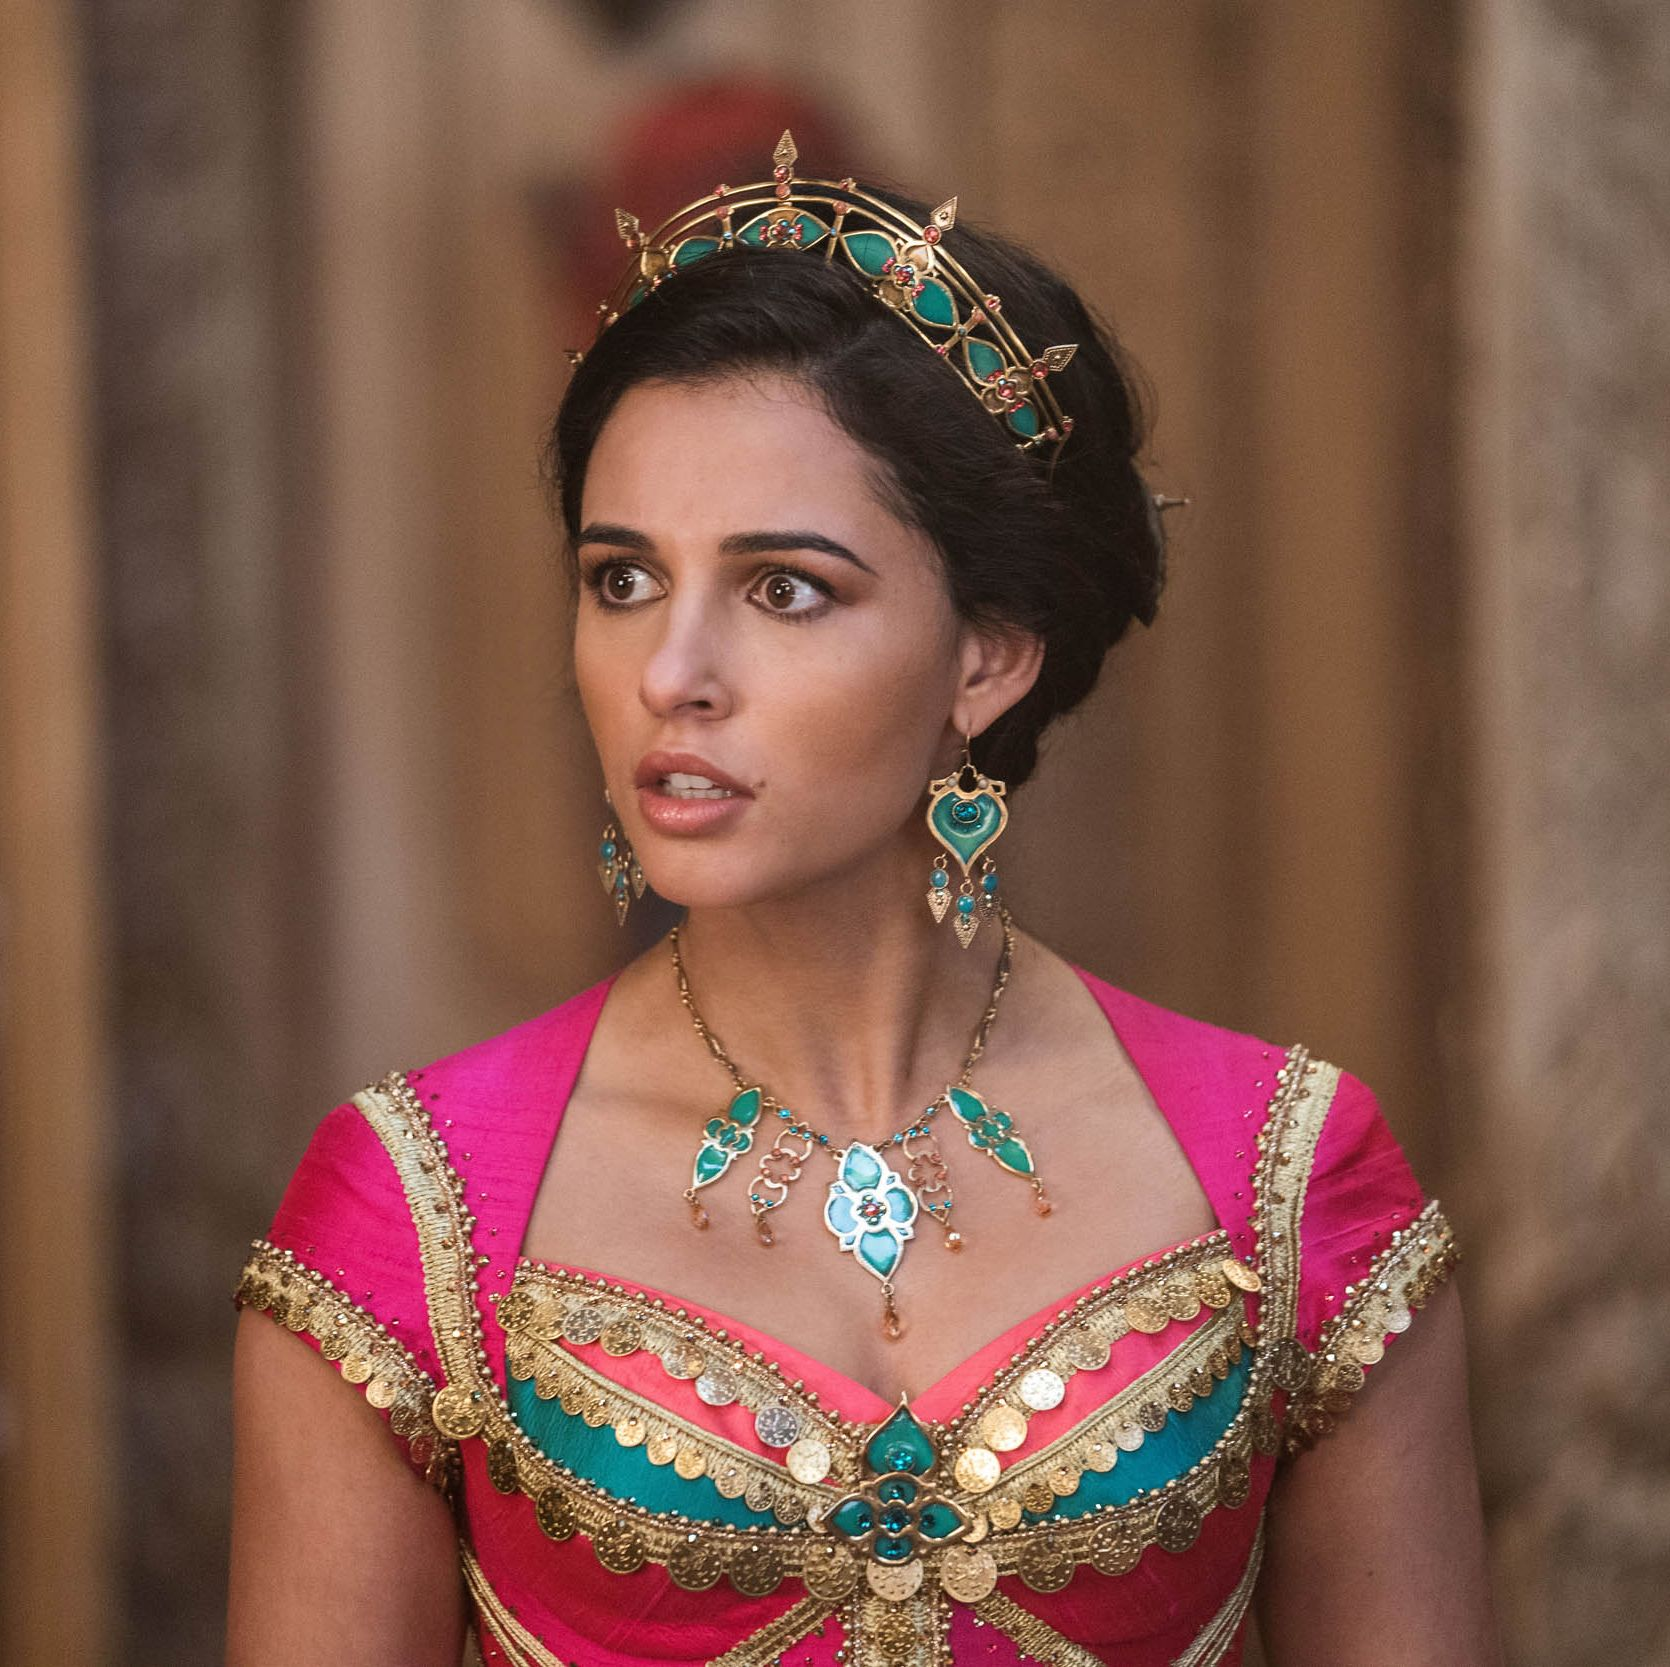 Naomi Scott as Princess Jasmine in the live-action reboot of Disney's Aladdin.